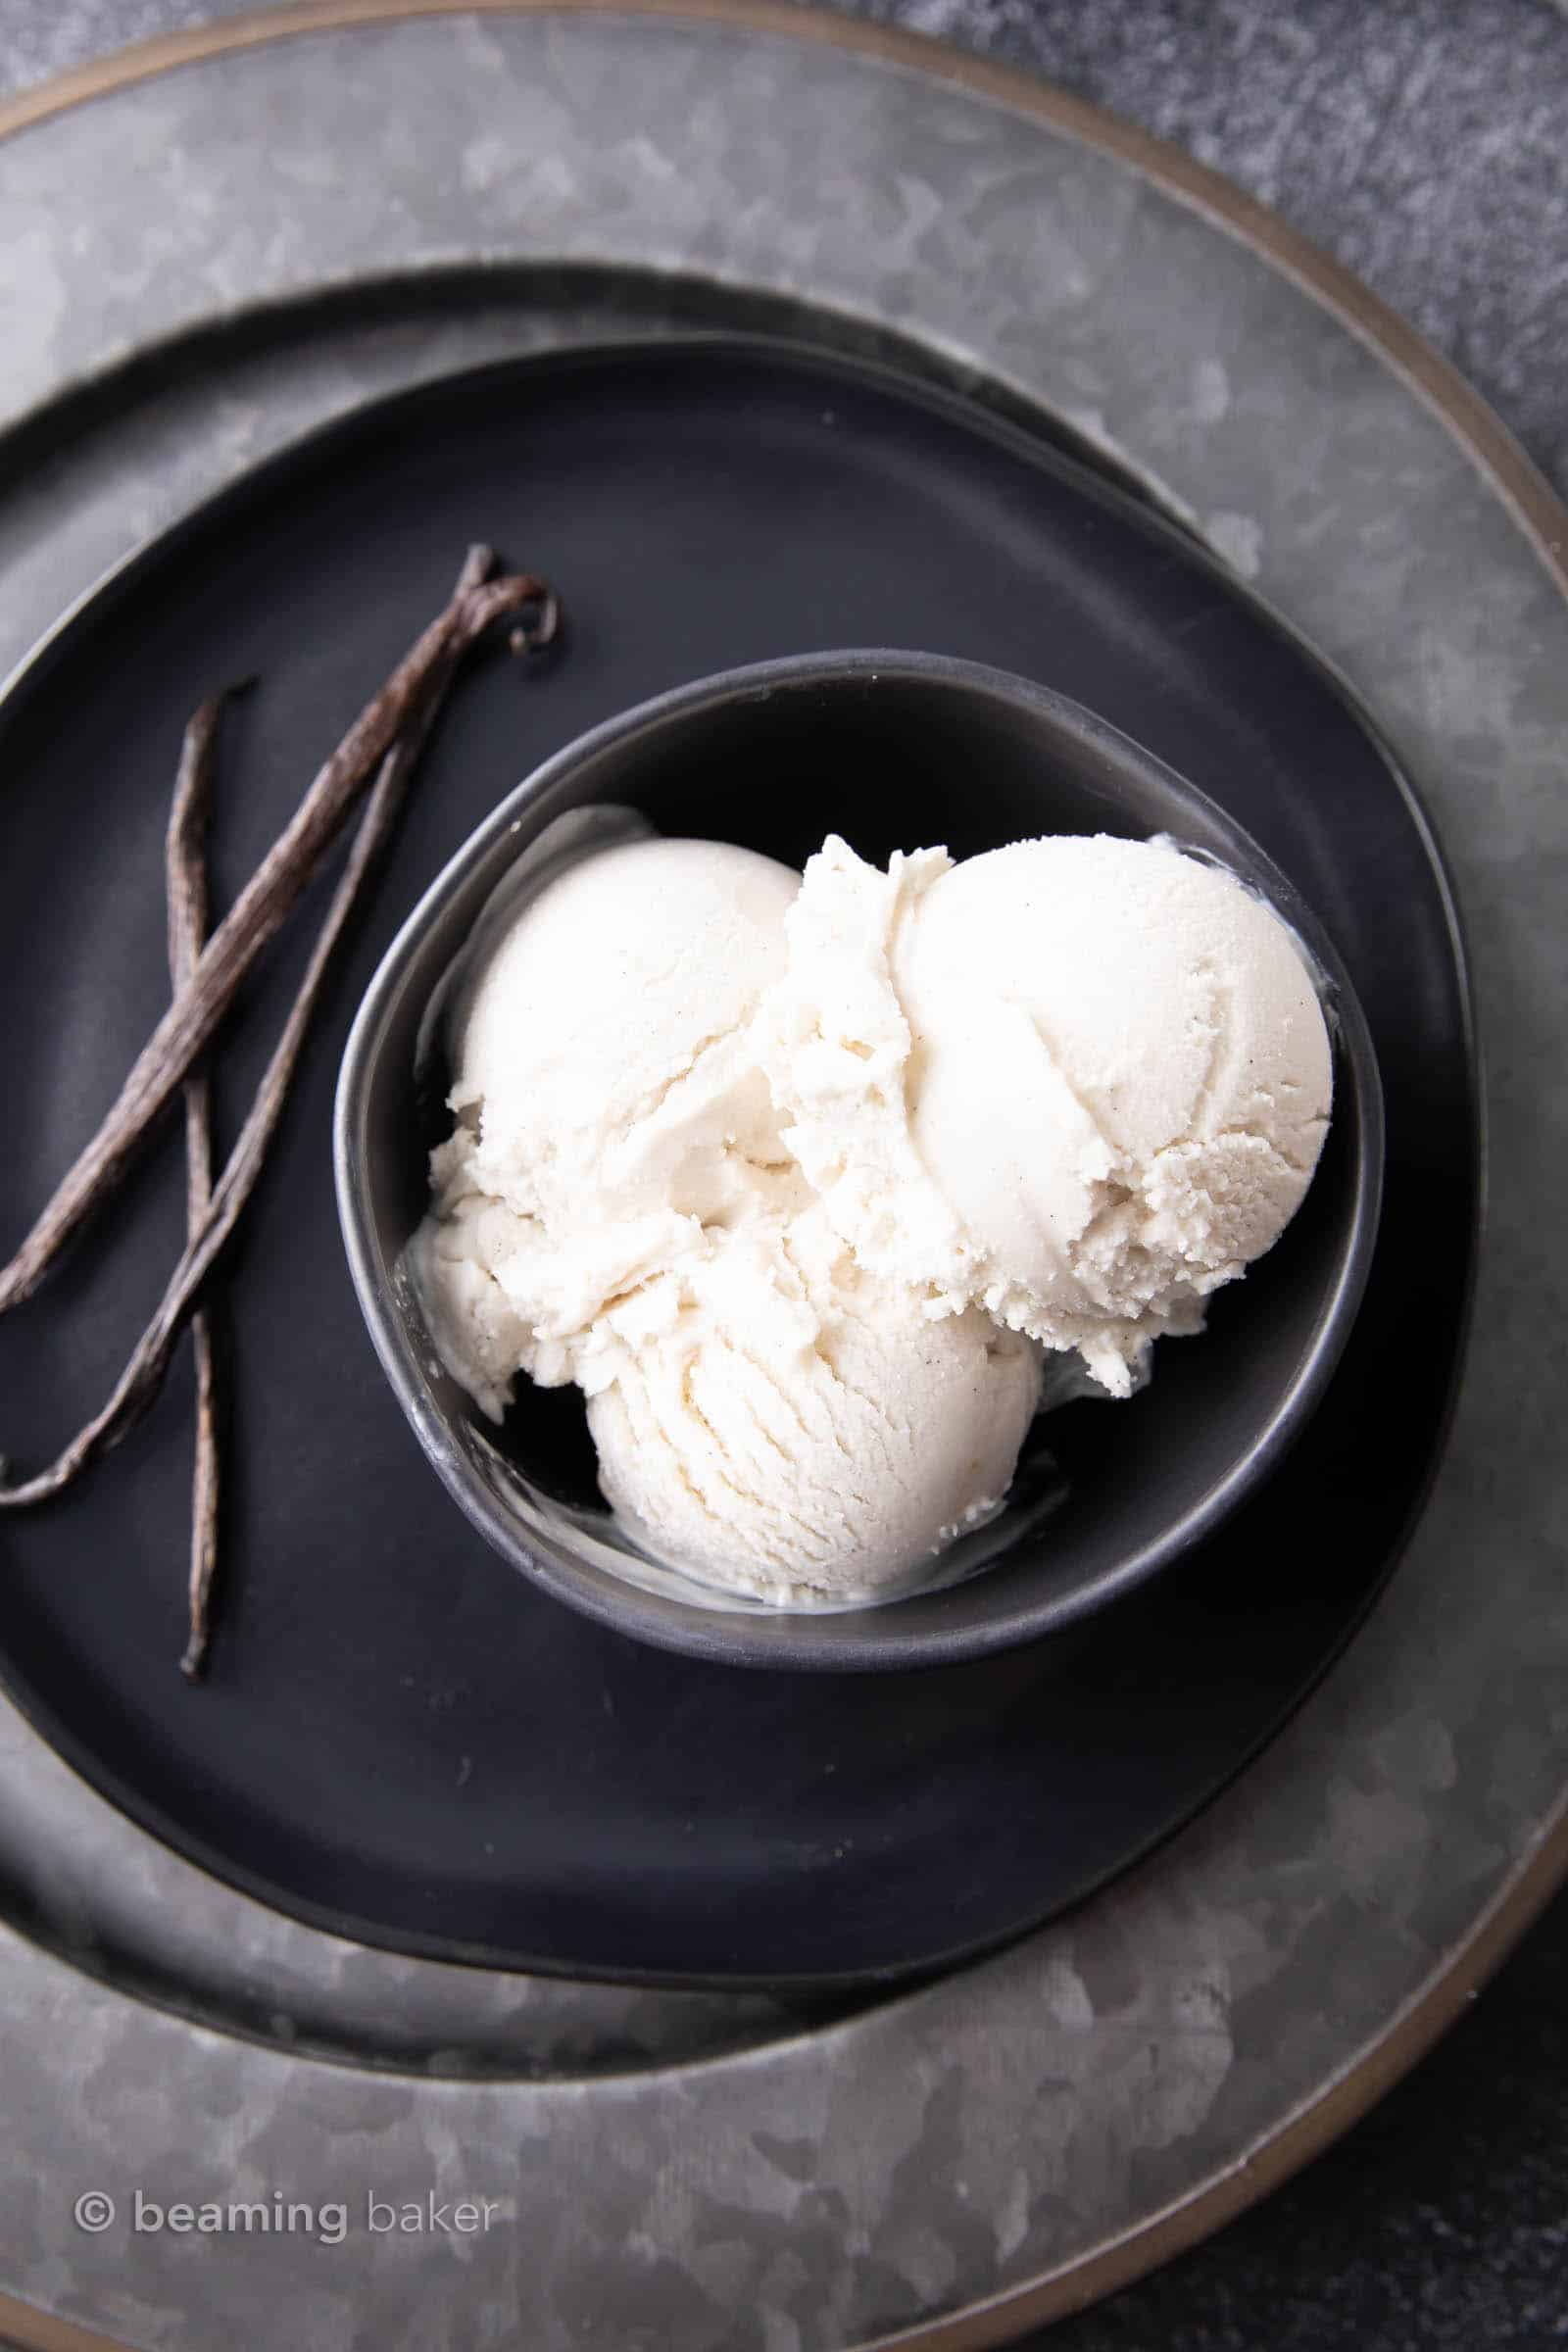 Vegan Vanilla Ice Cream Recipe: this homemade vegan ice cream recipe is EASY, rich 'n creamy. The best vegan vanilla ice cream made with simple ingredients & an ice cream maker! Dairy-Free. #Vegan #IceCream #VanillaIceCream #VeganIceCream | Recipe at BeamingBaker.com